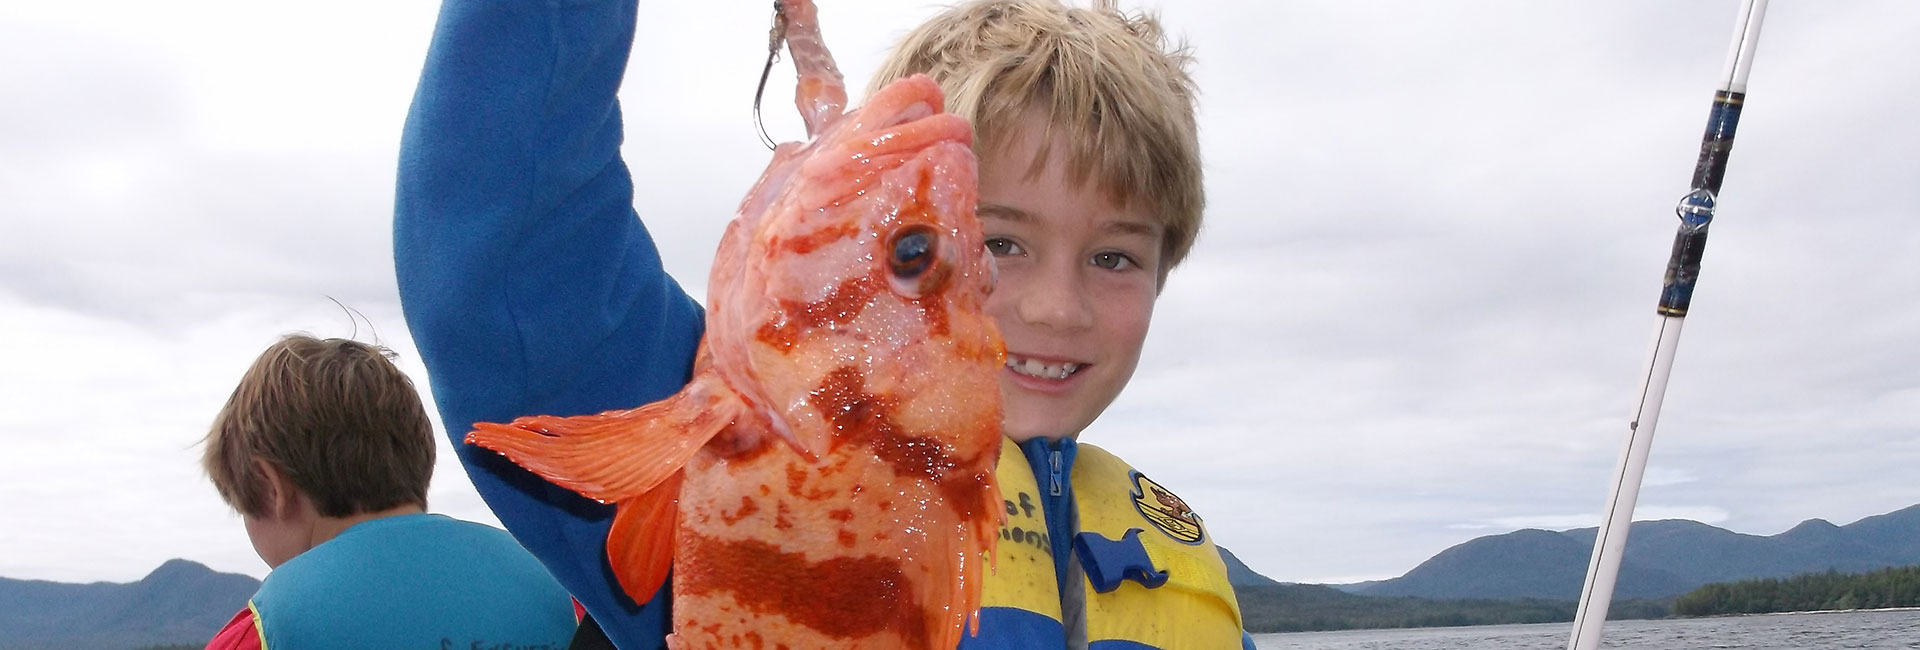 Ketchikan Kids fishing stories